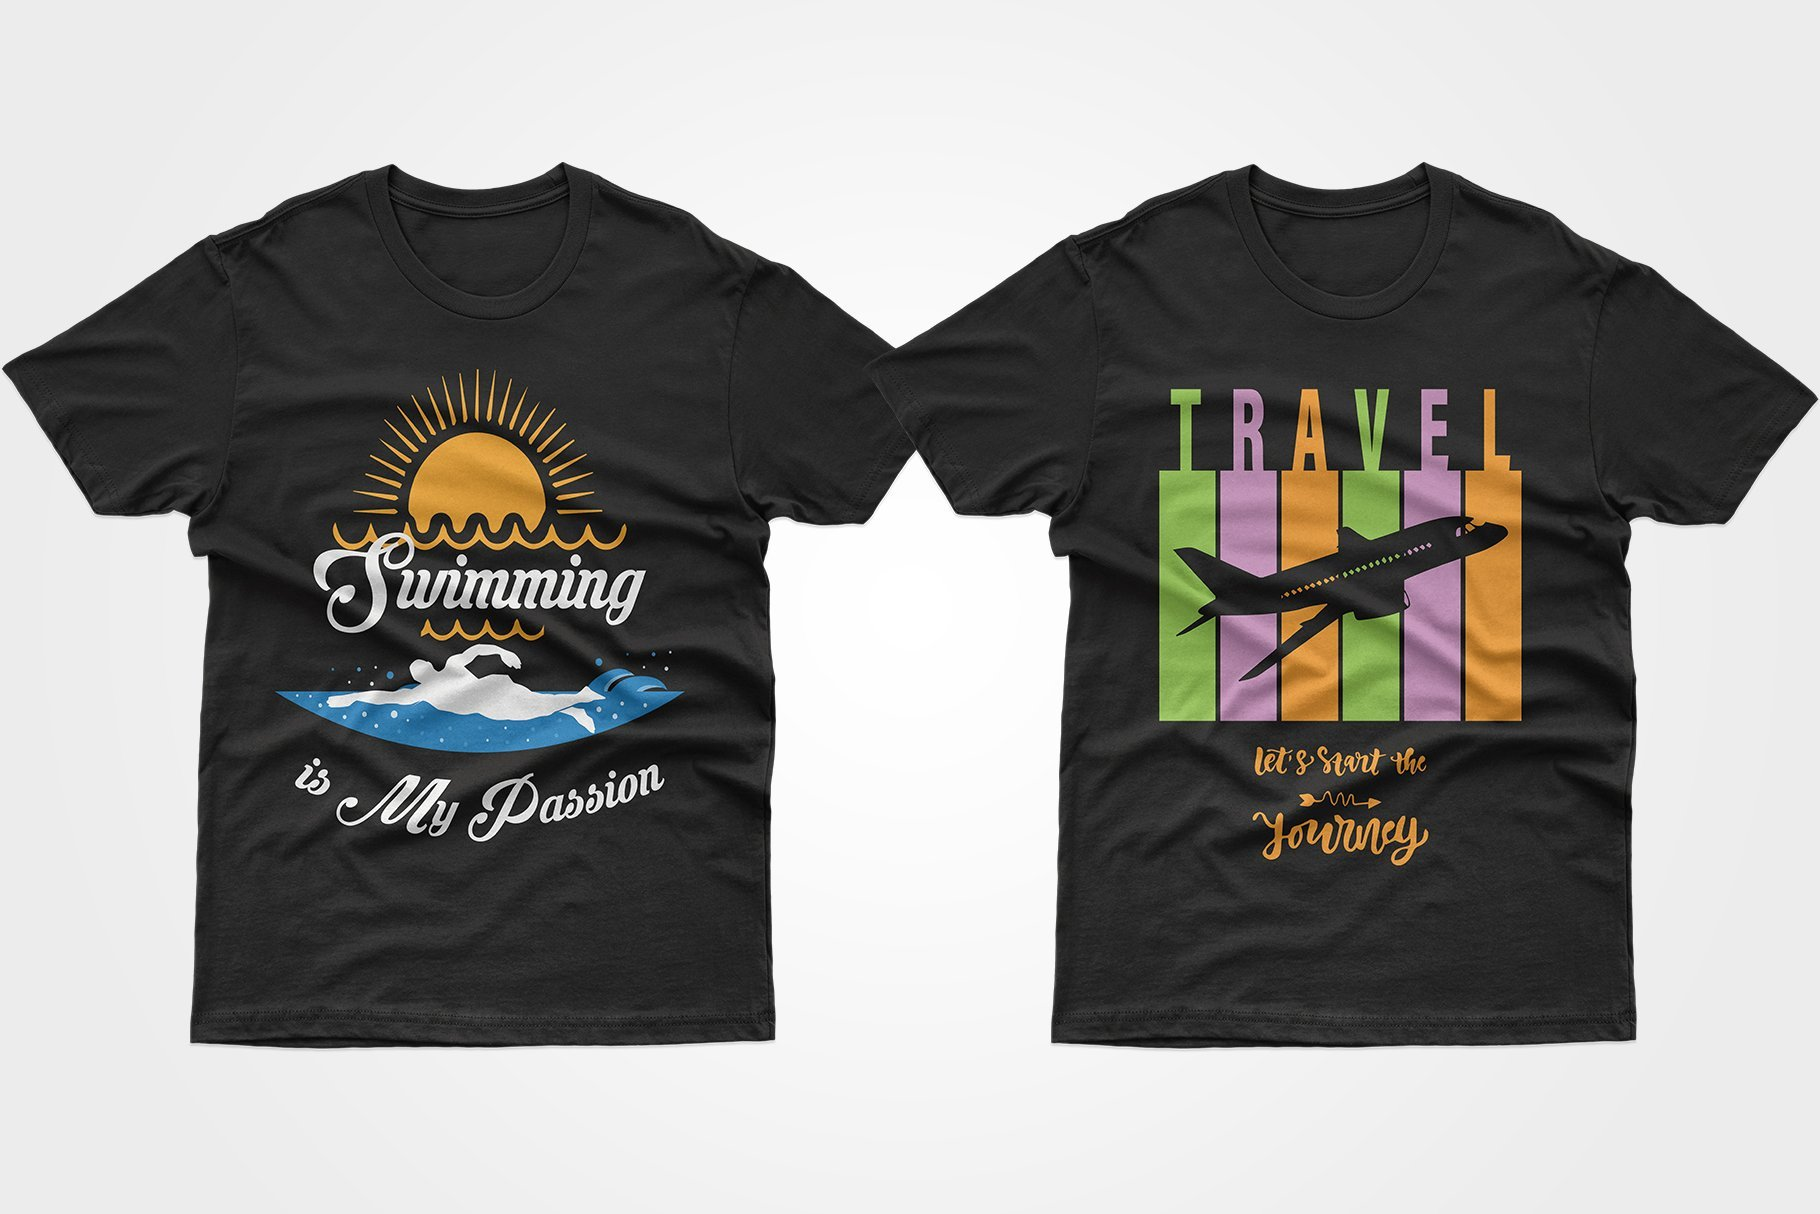 Two black T-shirts - one about the love of swimming, the other about the delight of traveling.